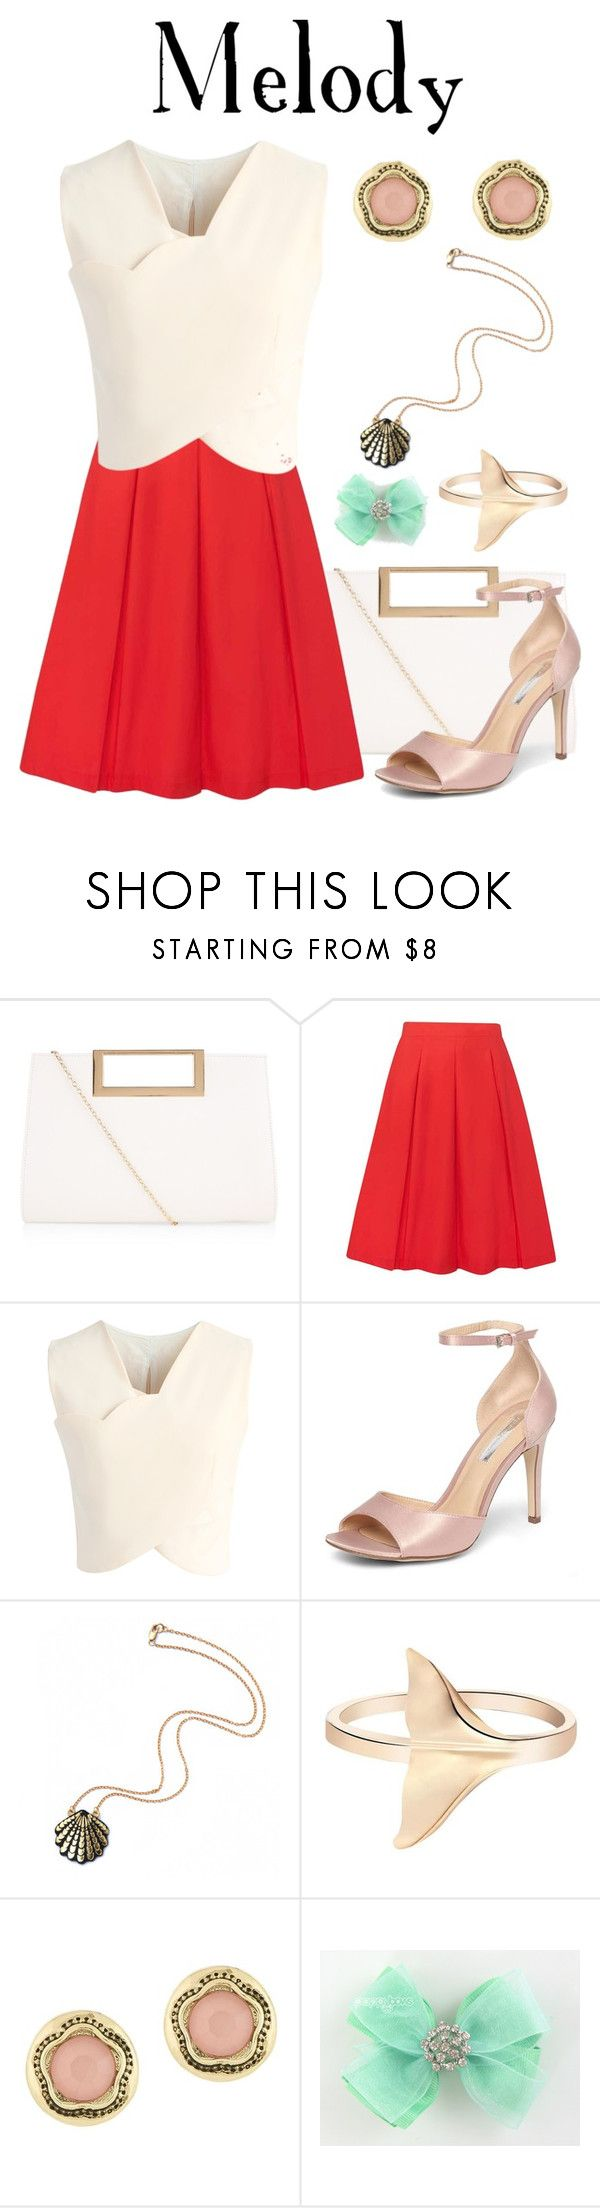 """""""Melody / Little Mermaid 2: Return to the Sea"""" by waywardfandoms ❤ liked on Polyvore featuring New Look, Dorothy Perkins, Chicwish, Rosita Bonita and Laundry by Shelli Segal"""